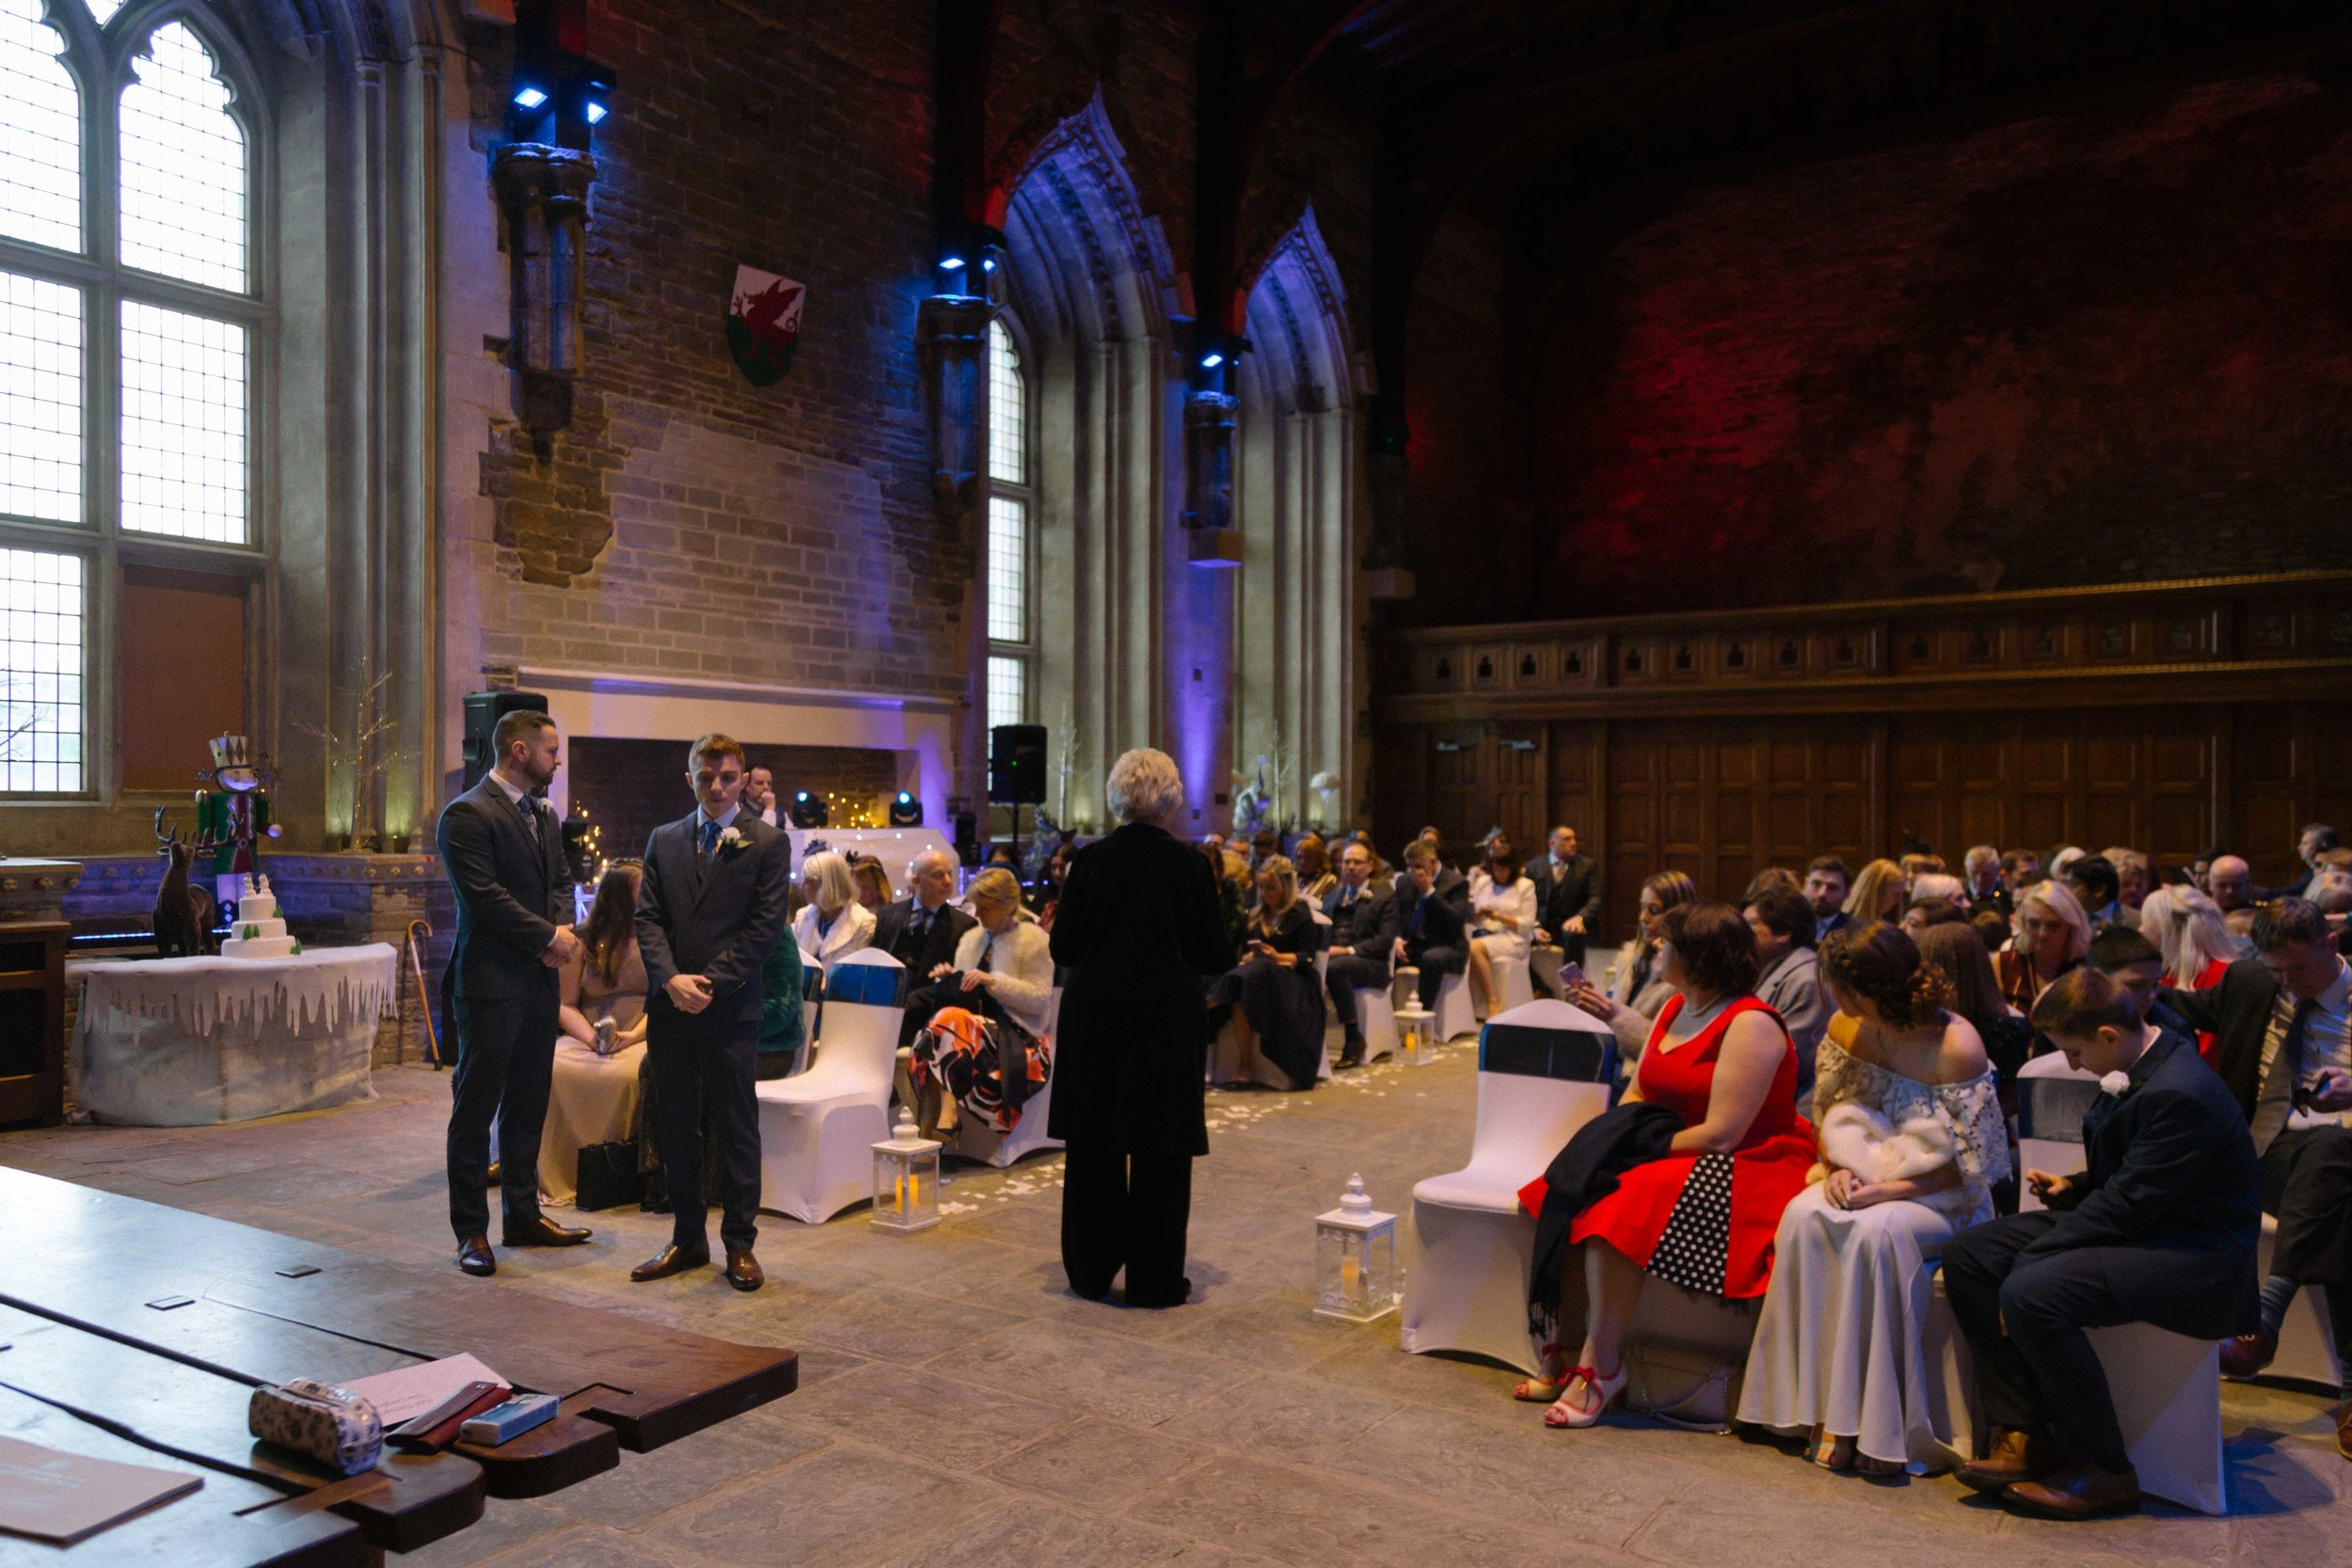 Photograph of the groom wedding for the brides arrival at the great hall at Caerphilly Castle